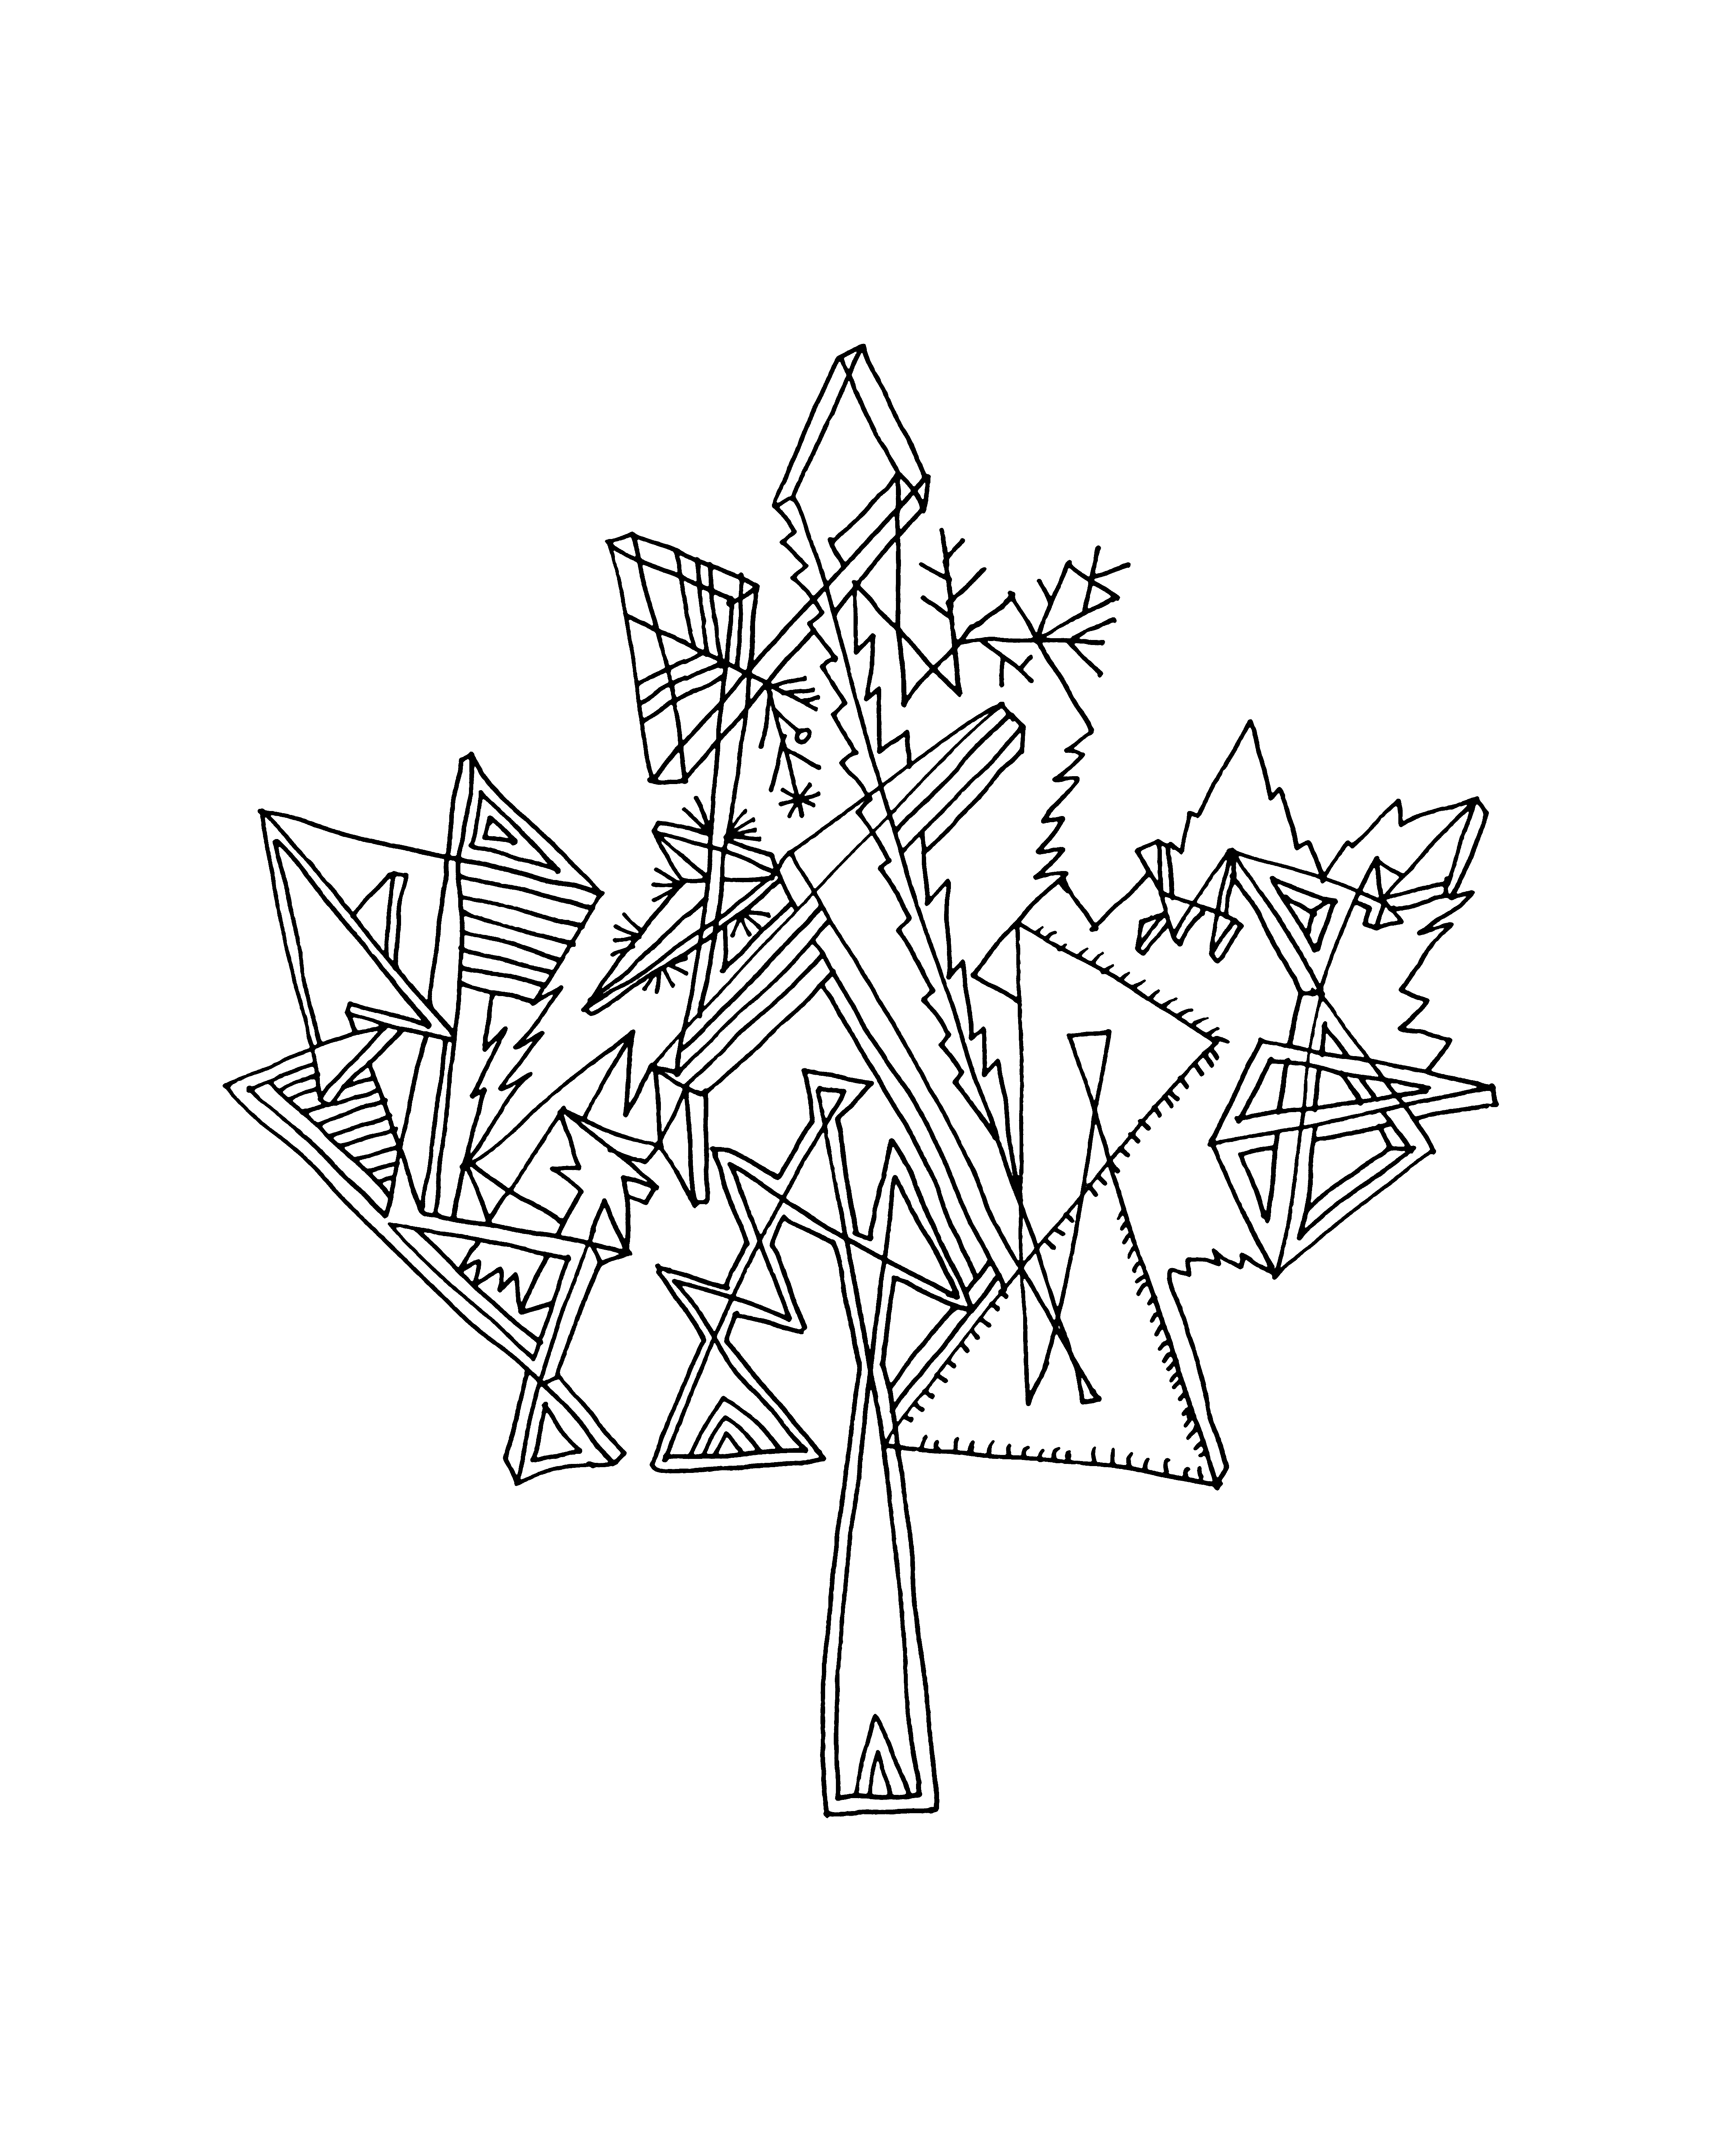 10 000 pages canadian maple leaf colouring page 5826